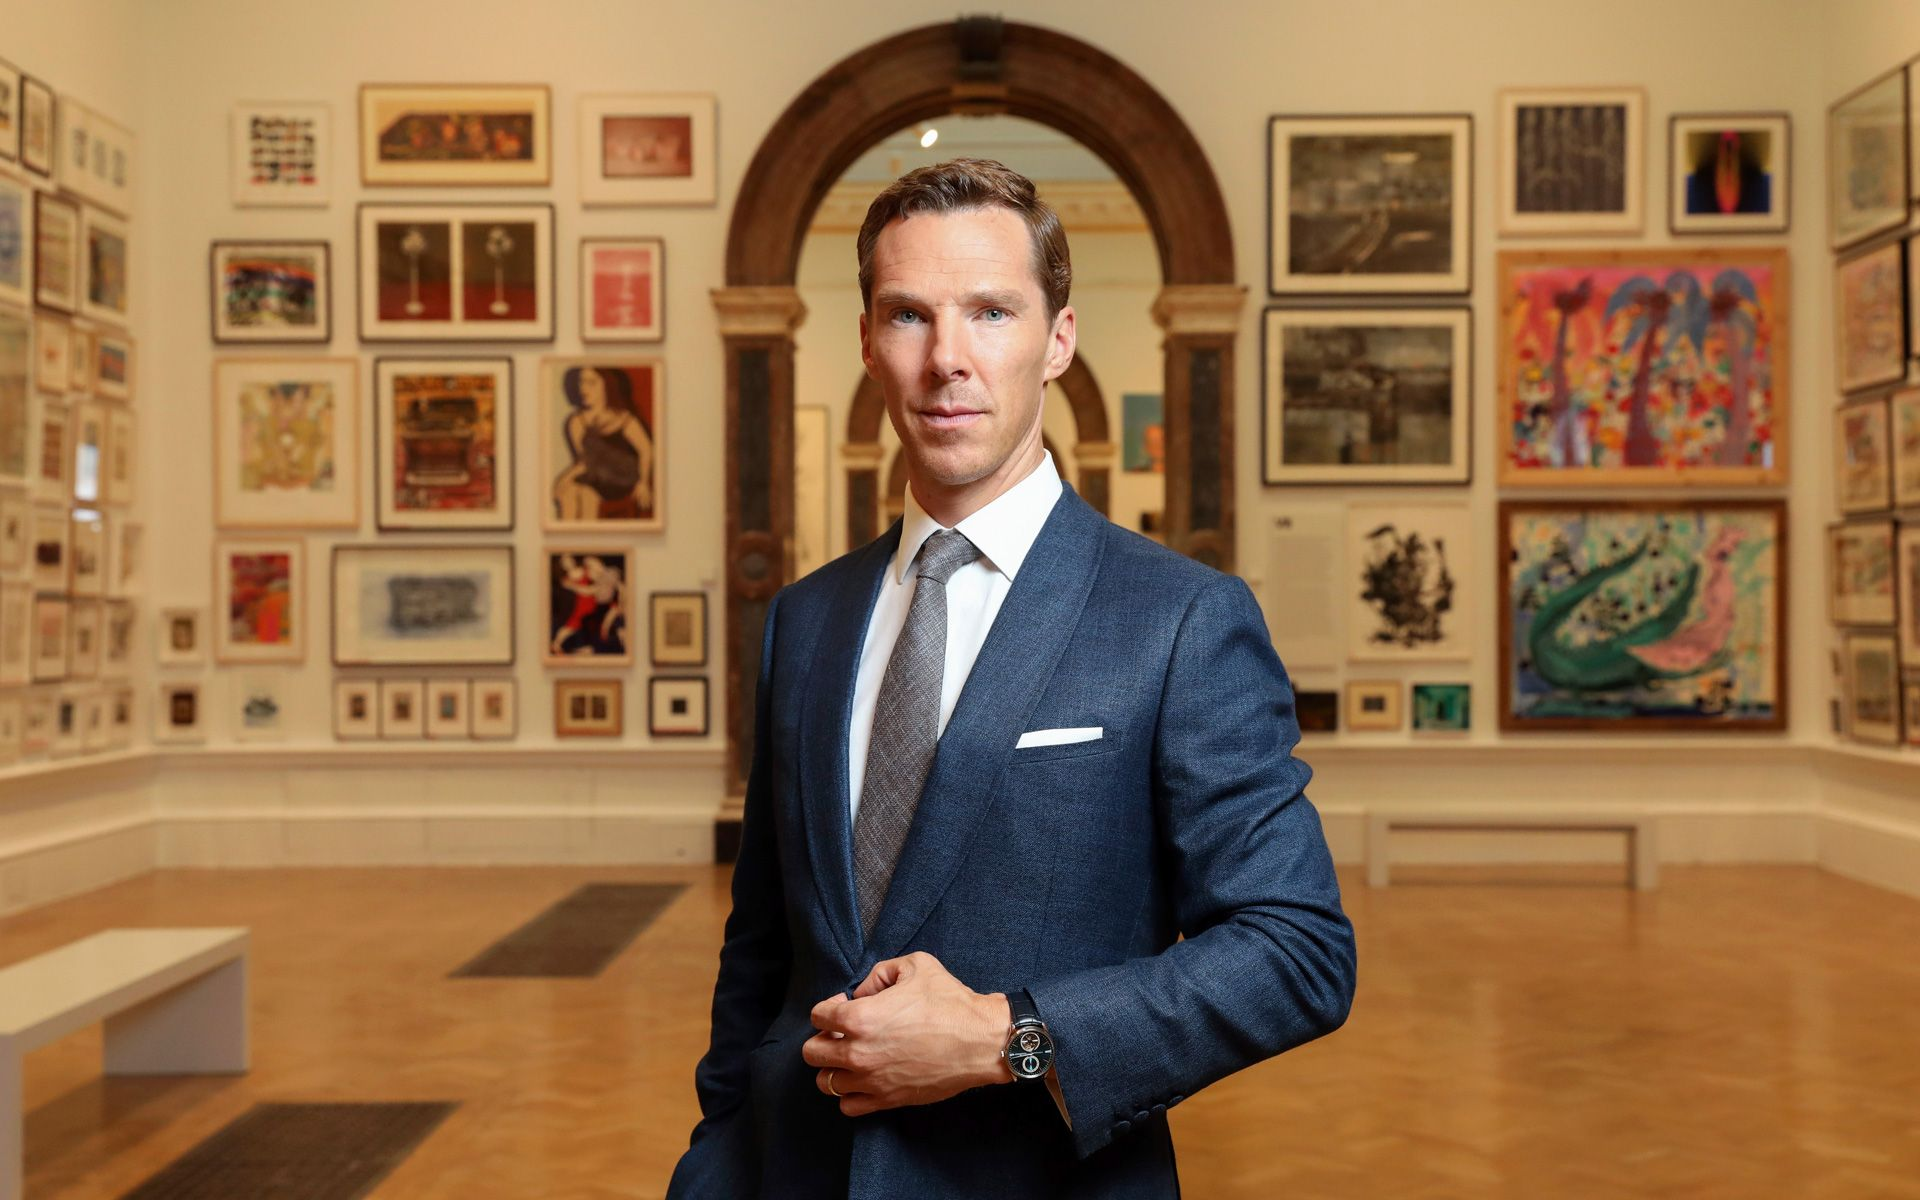 An Evening Of Art & Watchmaking History With Jaeger-LeCoultre At The Royal Academy Of Arts